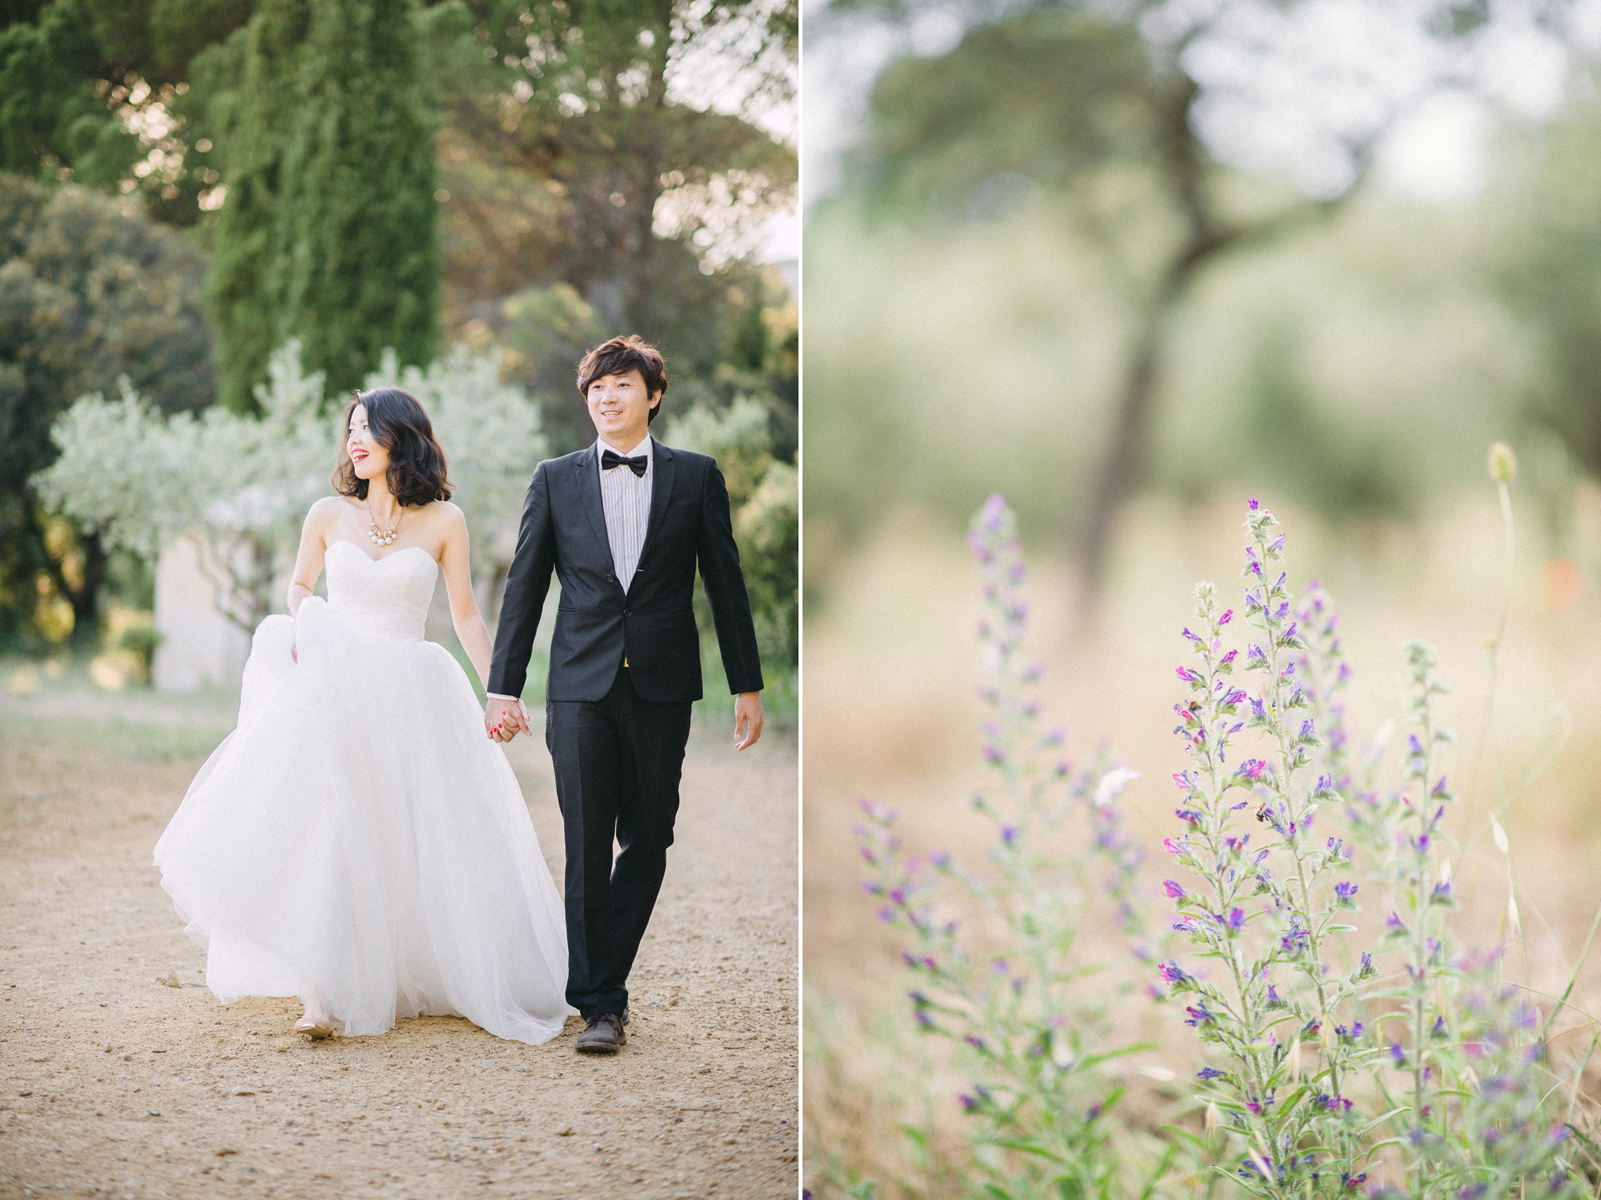 Boheme-Moon-Wedding-Photography-Taiwan-Pre-Wedding-Provence_17.jpg